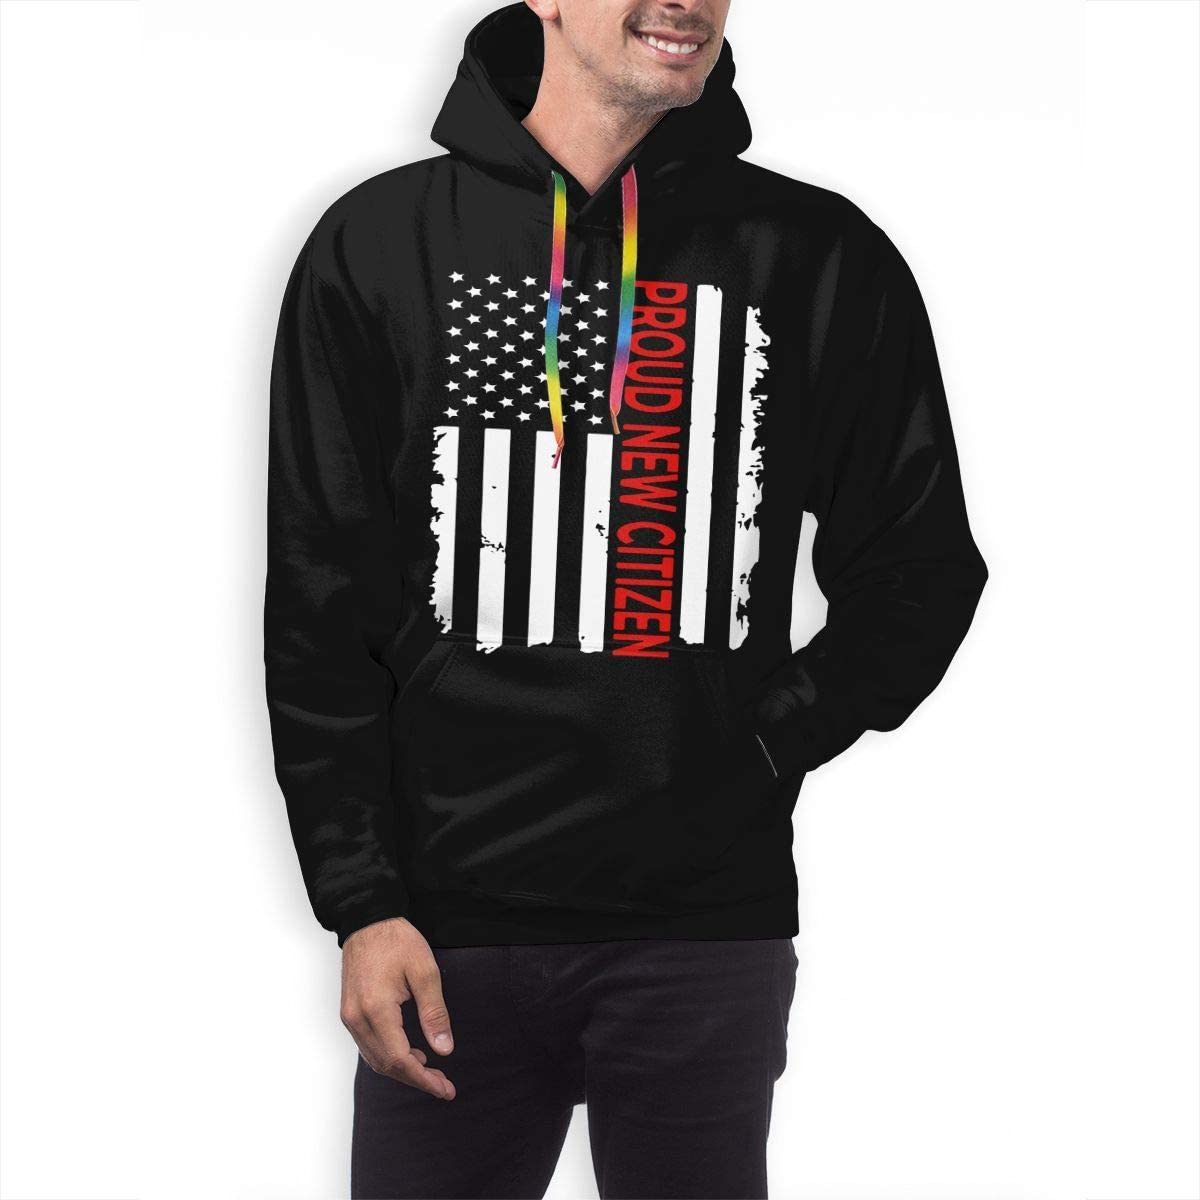 Proud New American Citizen Mens Hooded Sweatshirts Pullovers Long Sleeve Tops